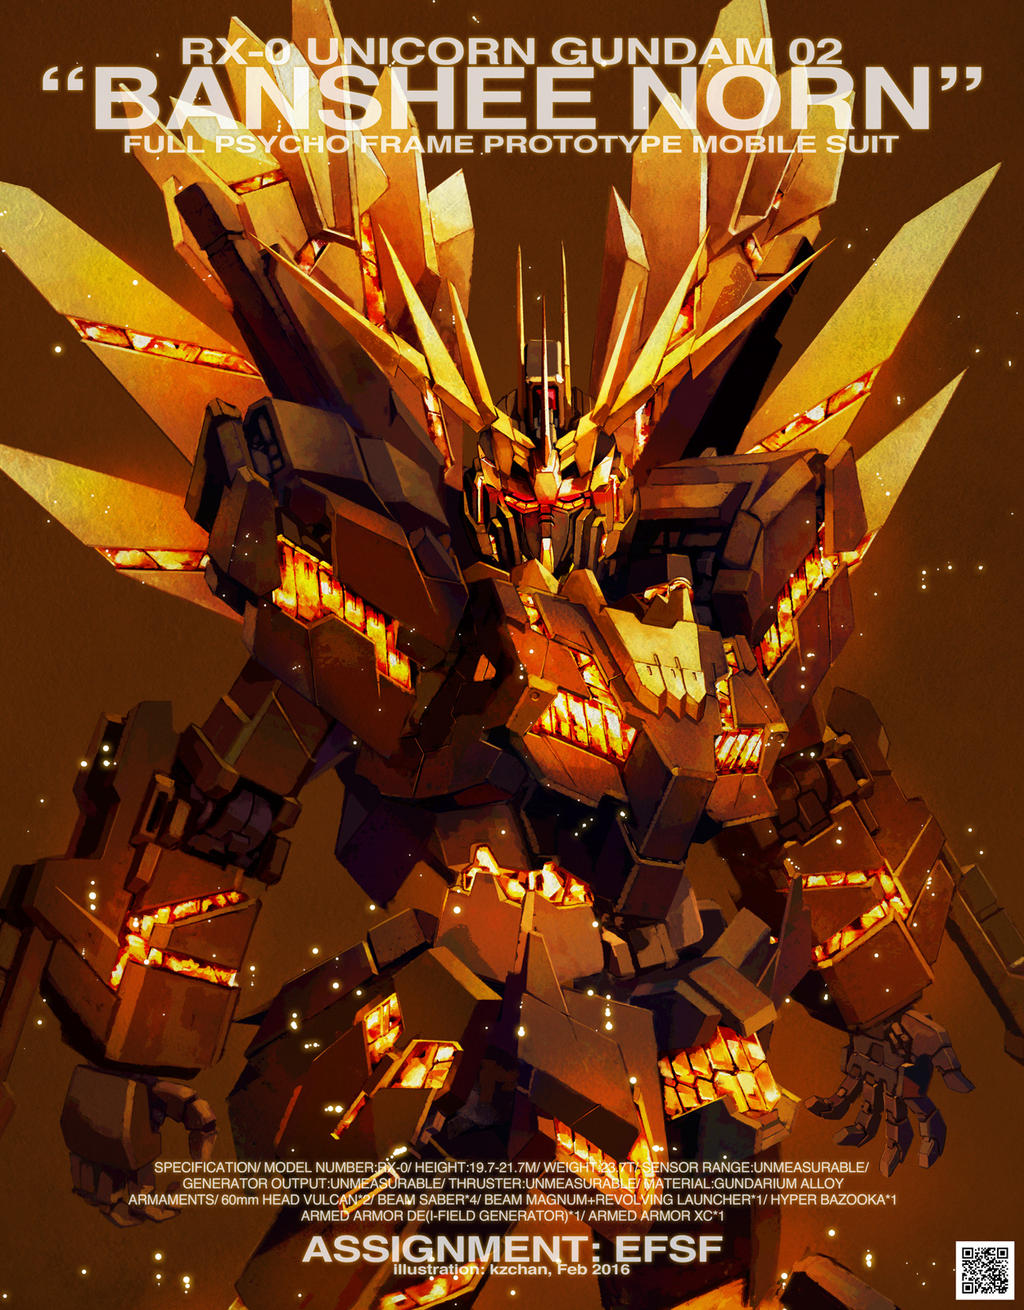 RX-0 Gundam Unicorn Banshee Norn by kzchan on DeviantArt